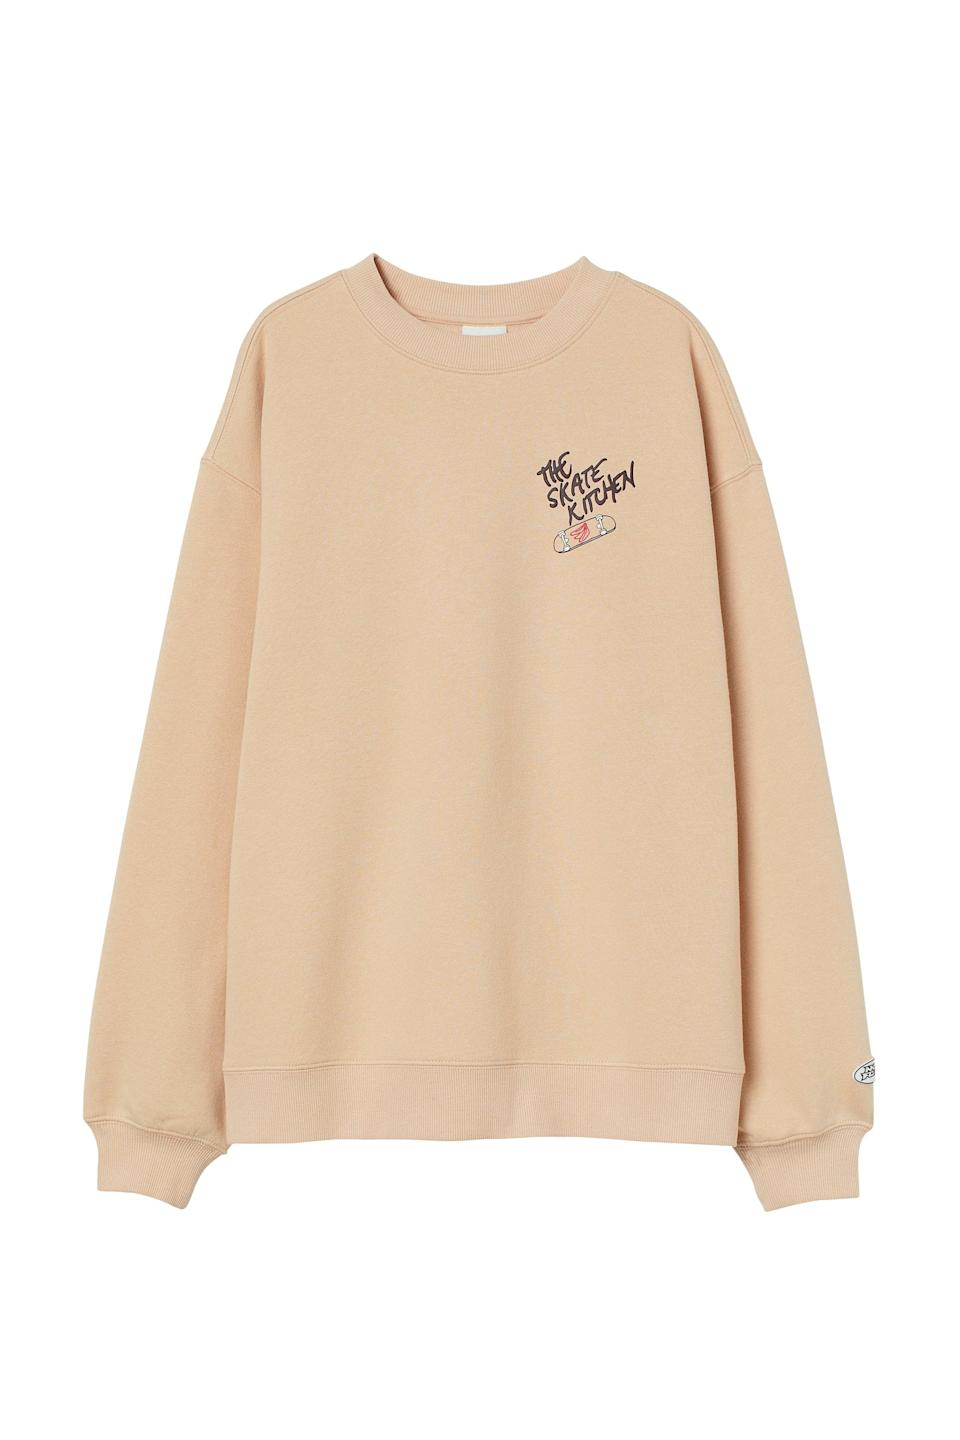 <p>This <span>No Fear x H&amp;M Printed Sweatshirt</span> ($25) is just a cool piece. It'll also make for a unique and fun gift.</p>